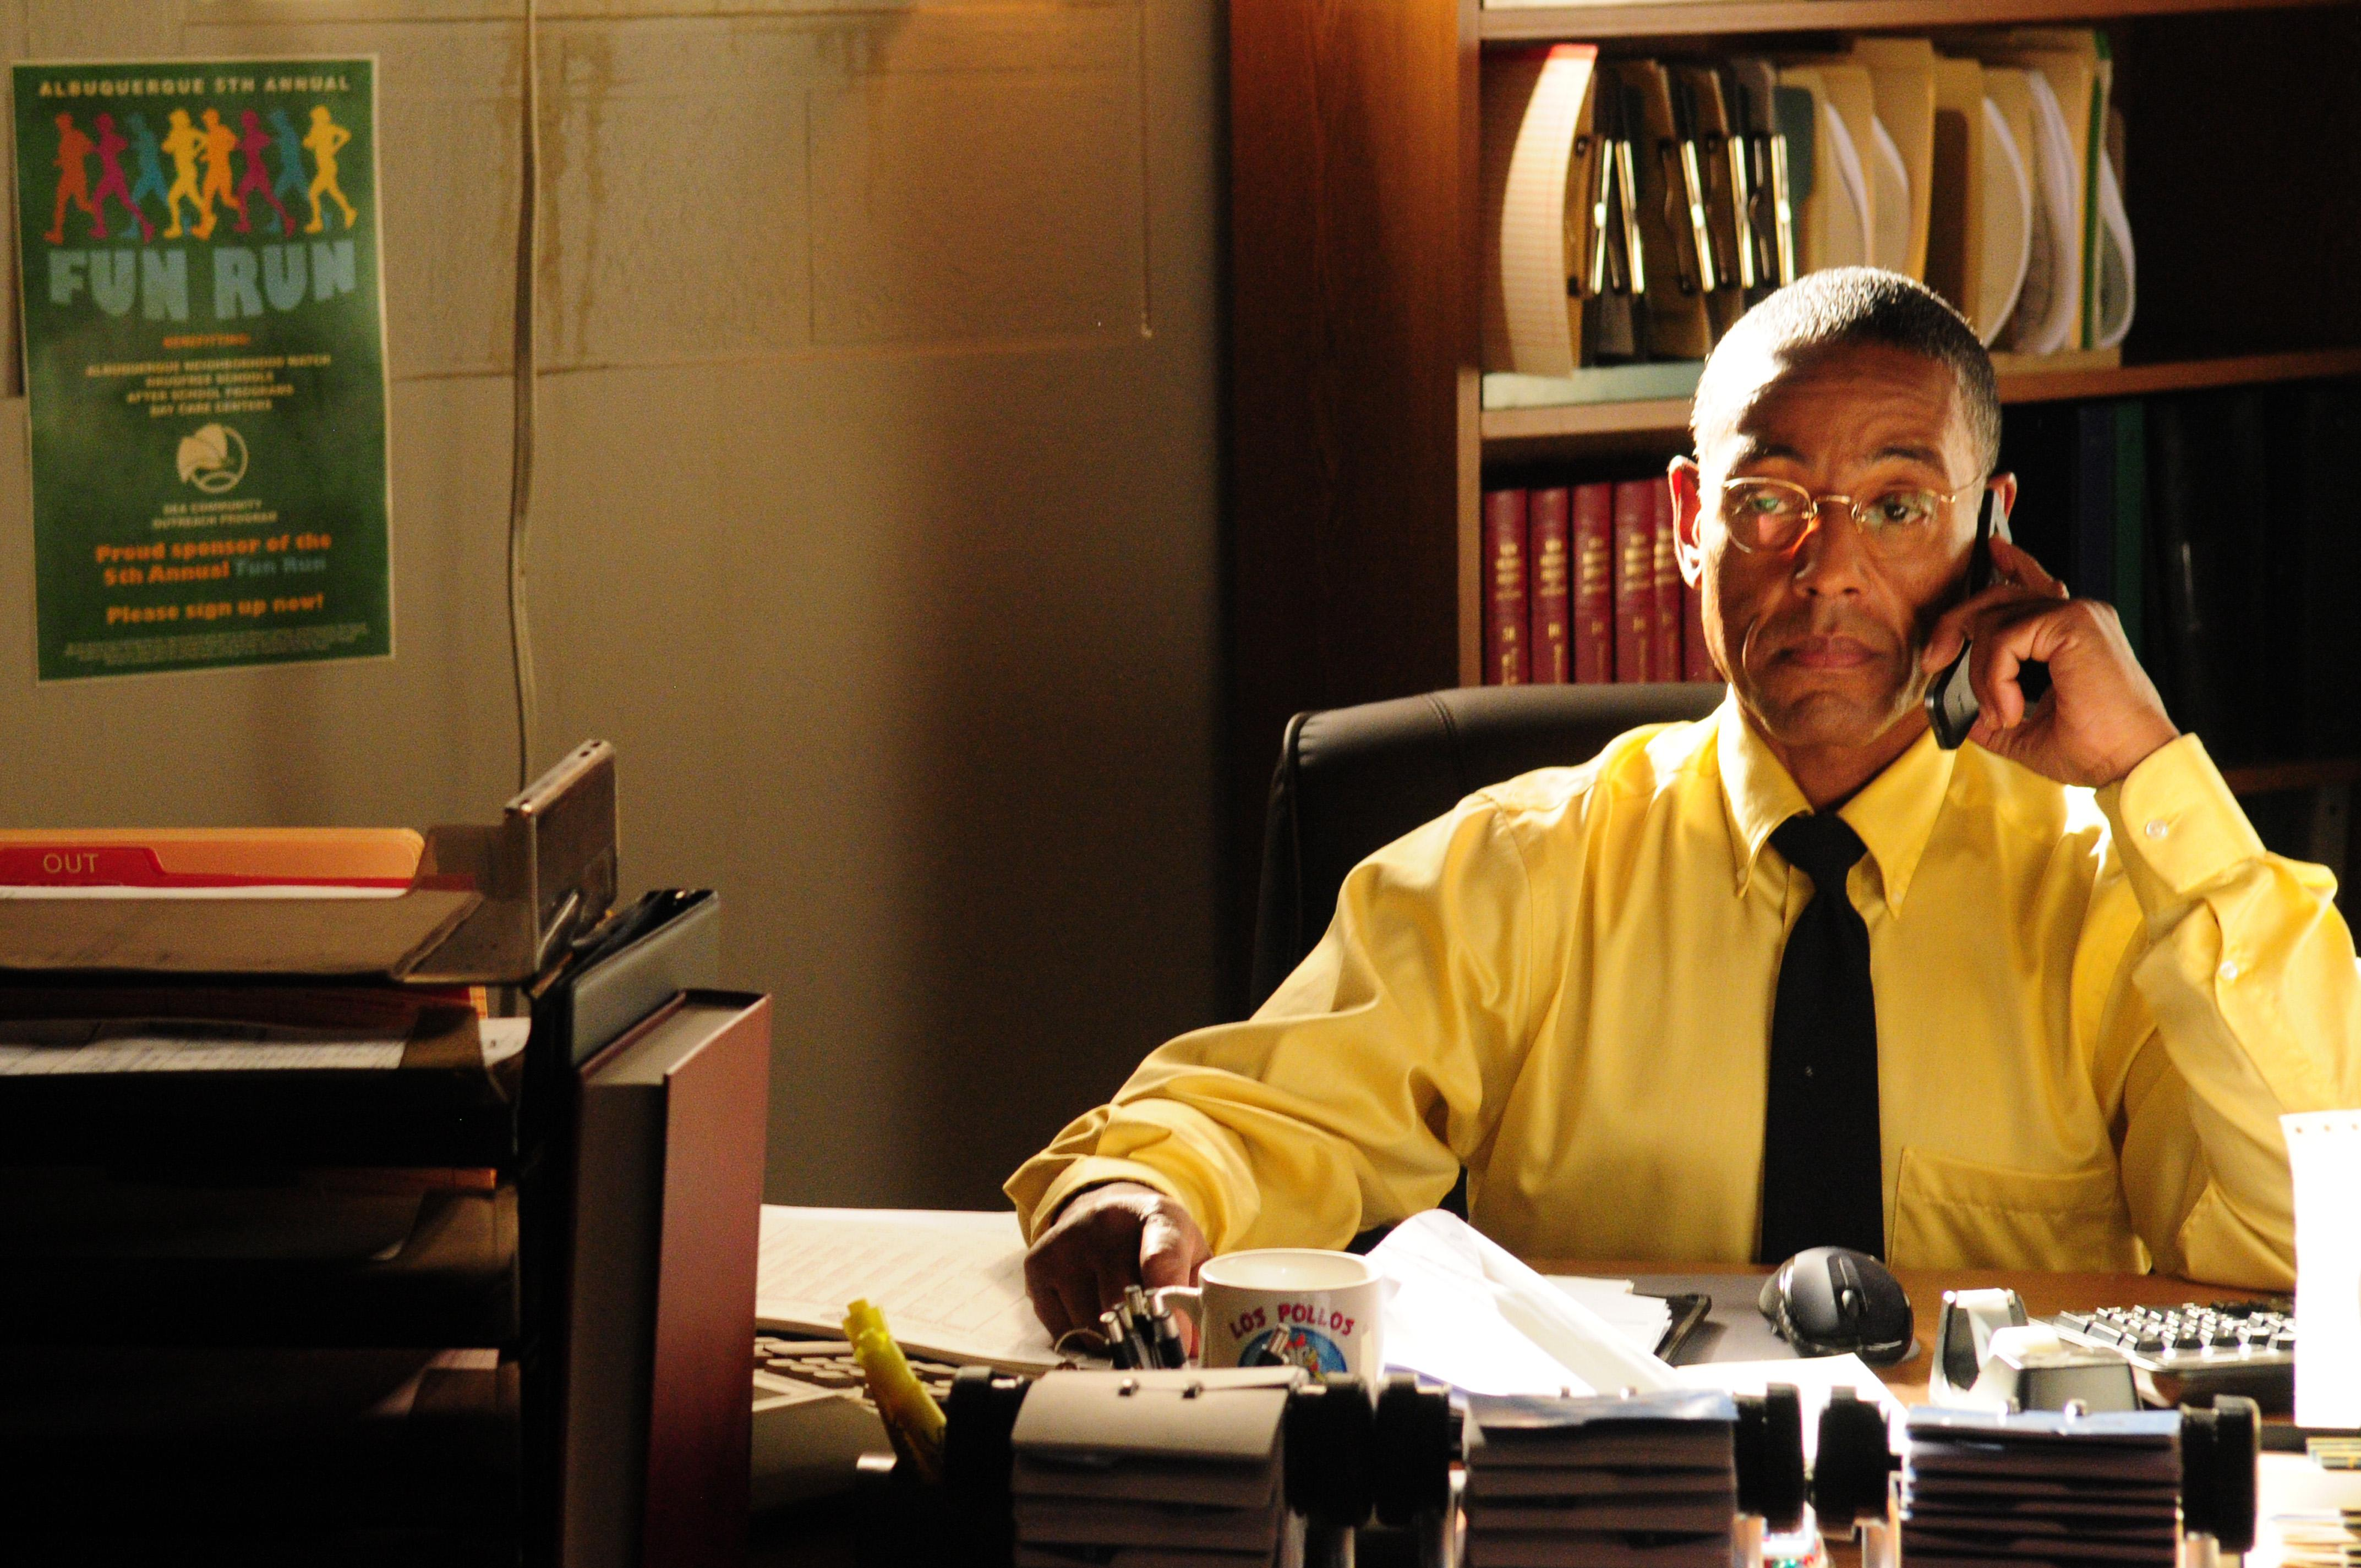 New 'Better Call Saul' trailer shows the title character in legal trouble